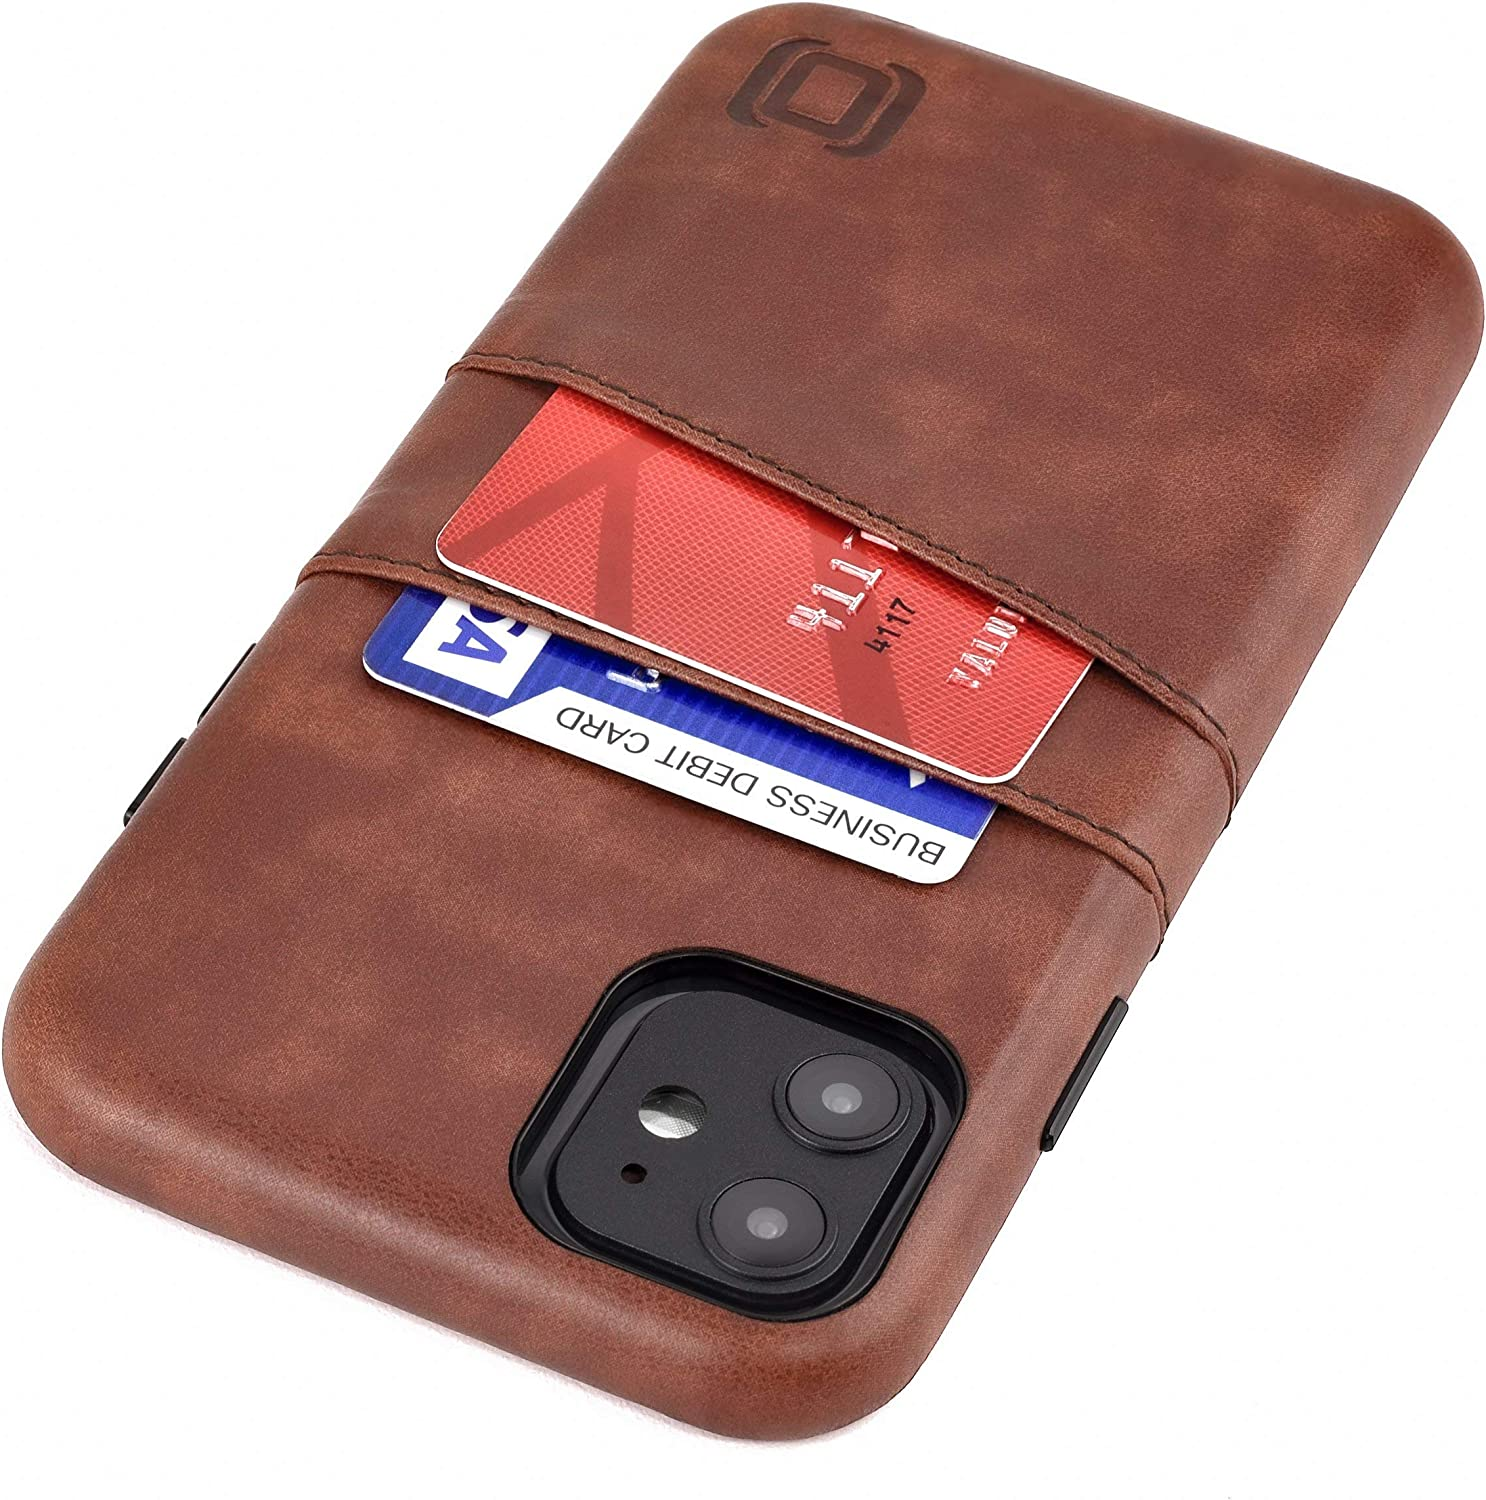 Dockem iPhone 11 Wallet Case: Built-in Metal Plate for Magnetic Mounting & 2 Credit Card Holders (6.1